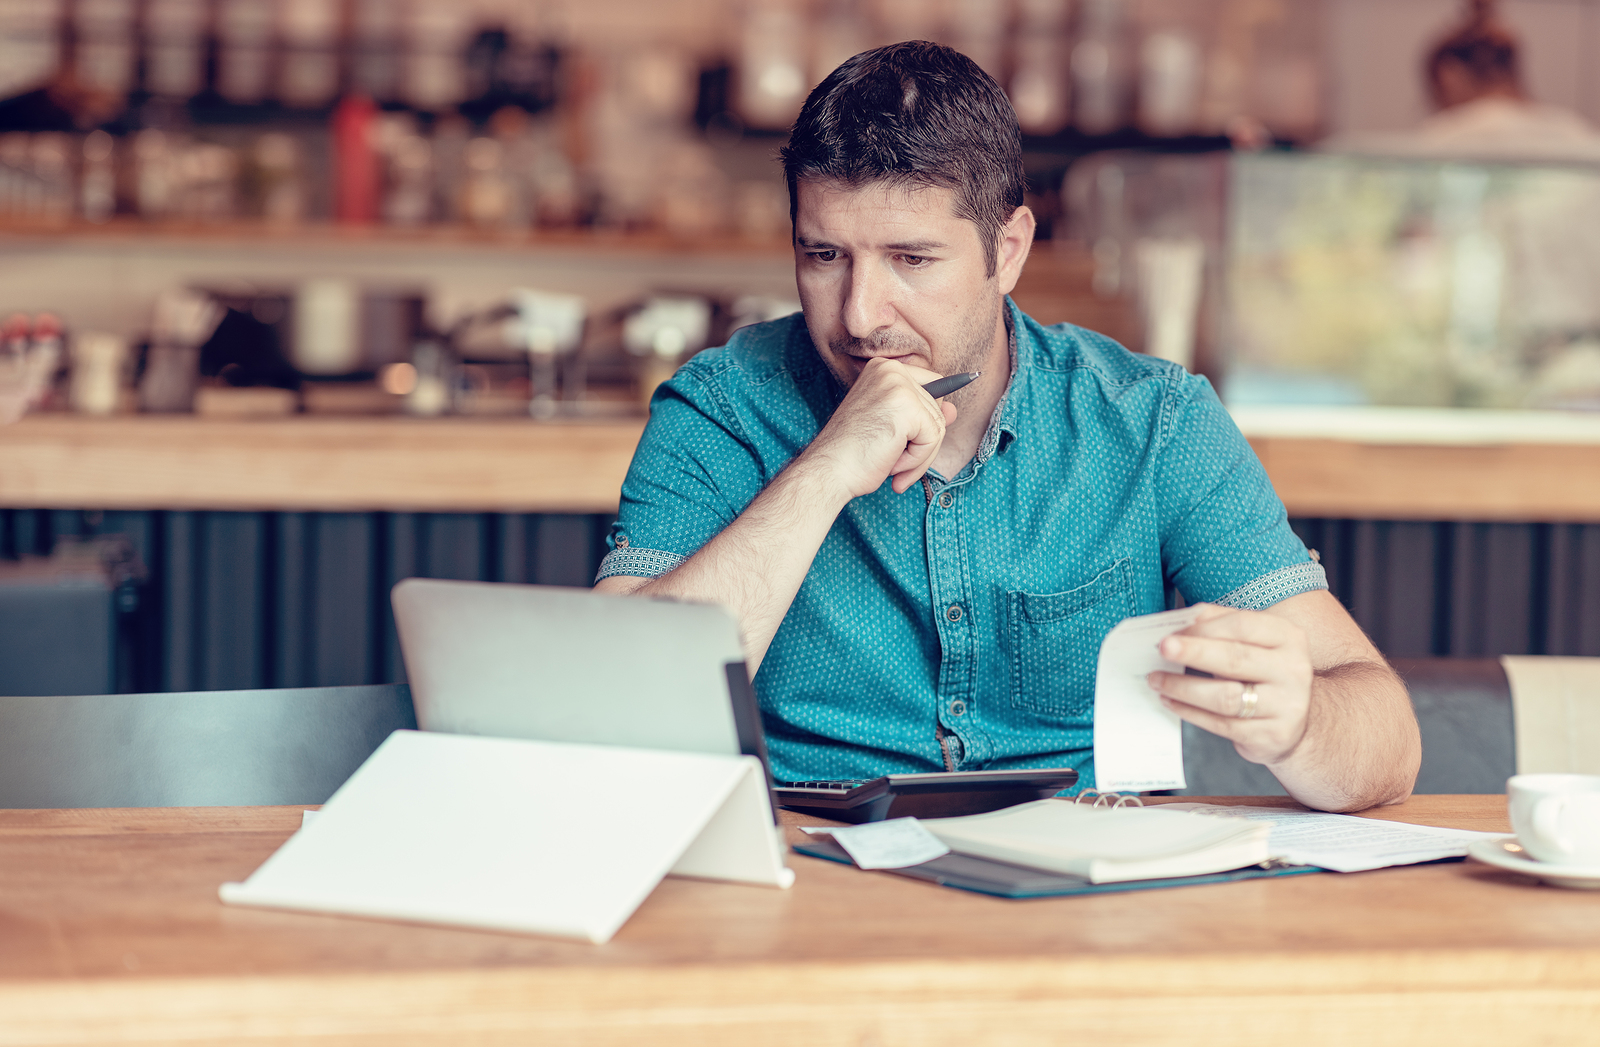 restaurant owner or manager looking through his reports on a tablet to find if there are ways to boost restaurant profits